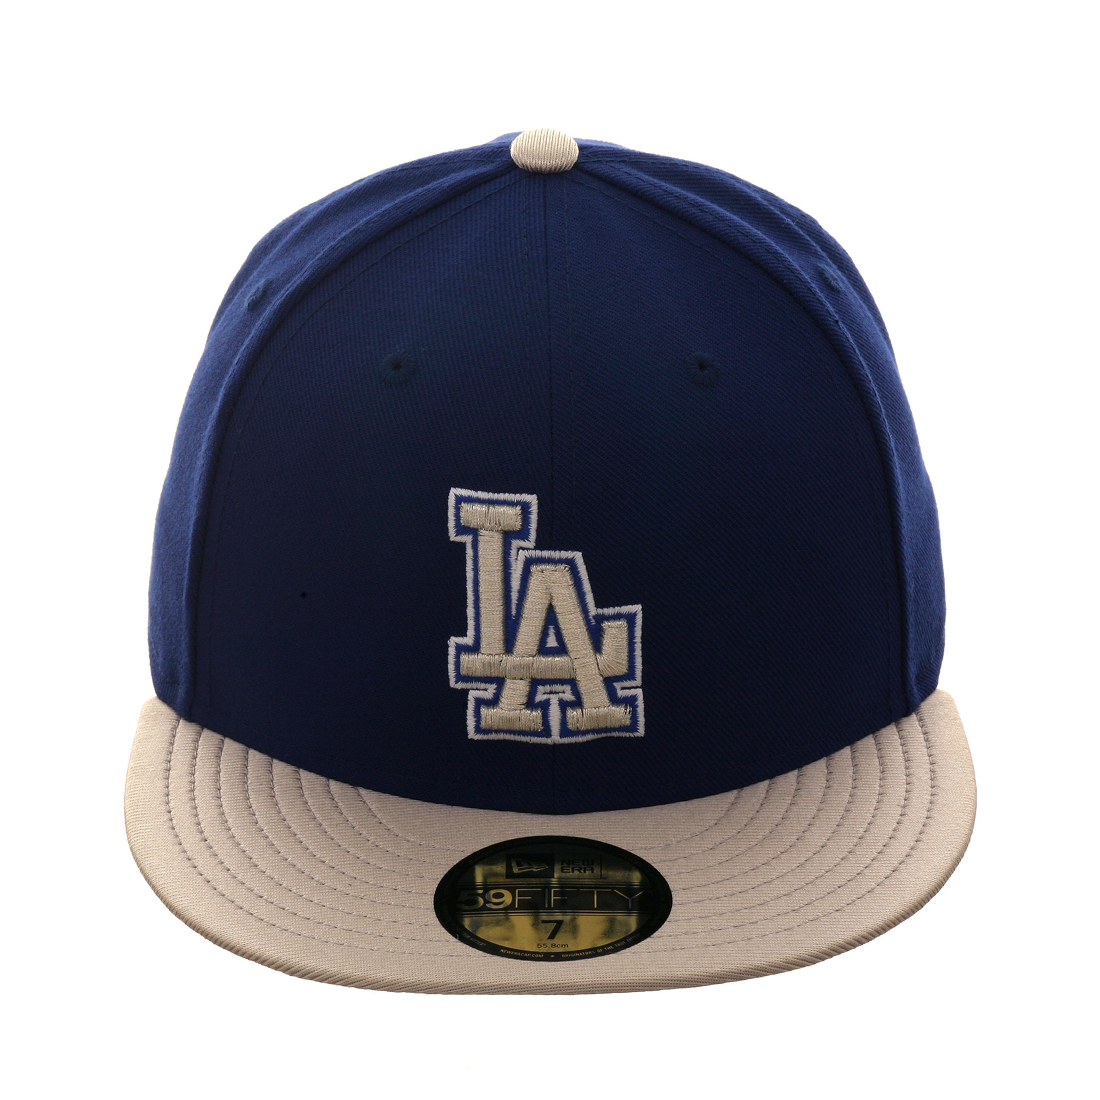 Exclusive New Era 59Fifty Los Angeles Dodgers Hat - 2T Royal